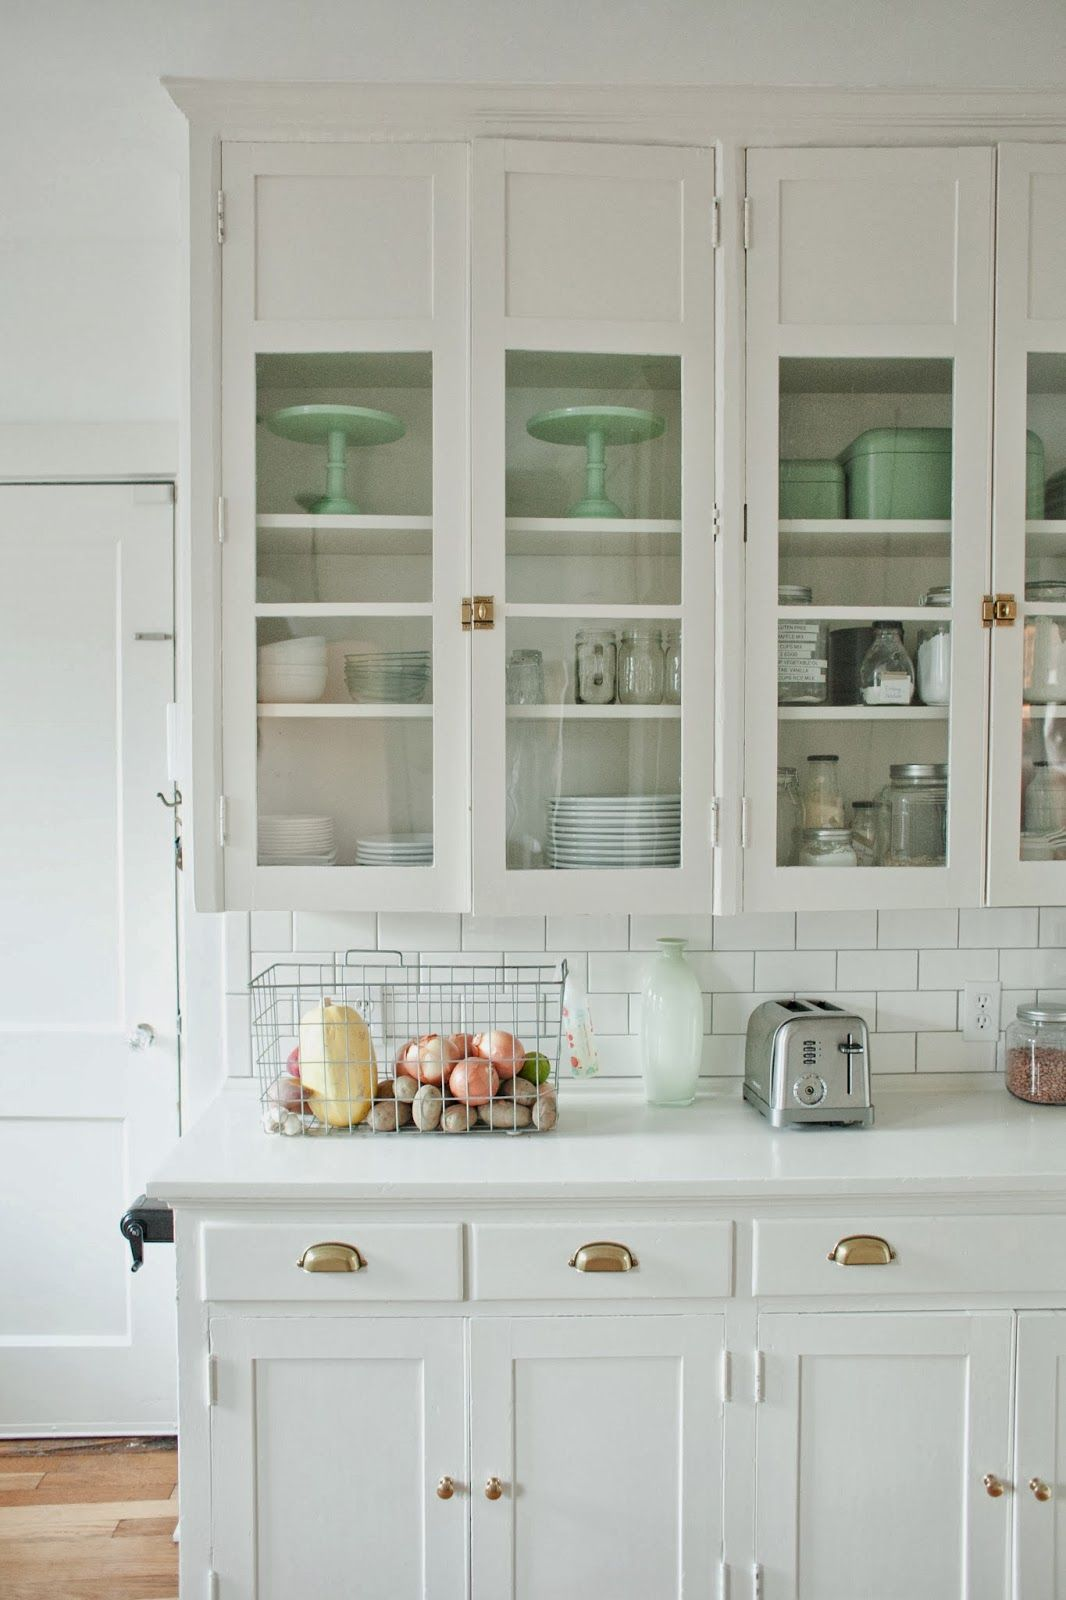 From The Nato S Kiitchen Diy Stunning White Cottage Kitchen Remodel Have To See All To Believe Kitchen Inspirations Kitchen Renovation Kitchen Upgrades